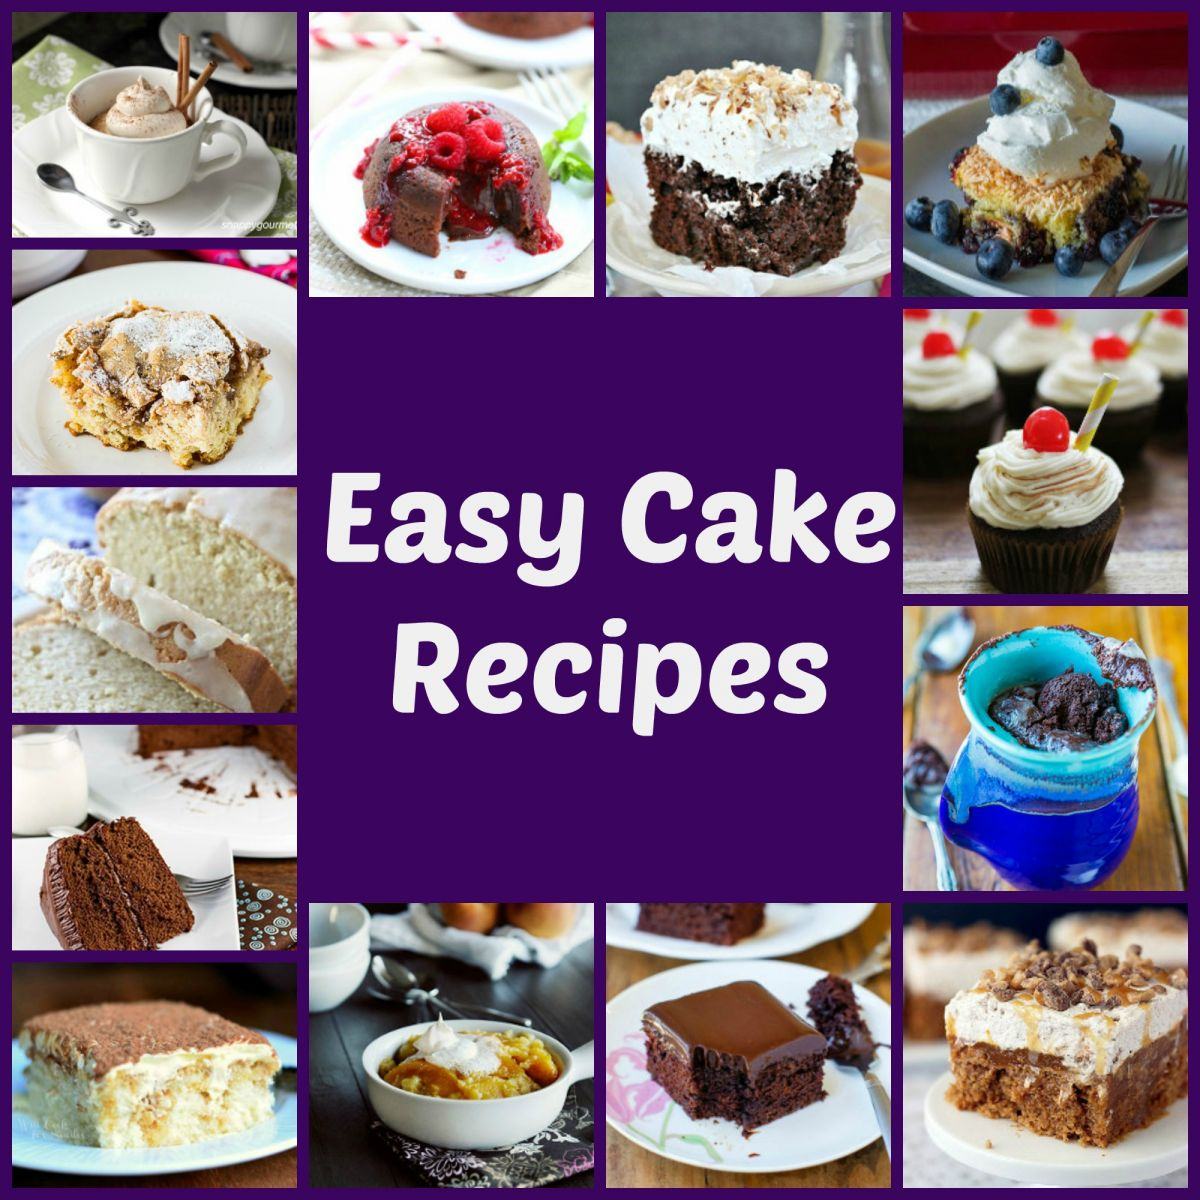 Recipes for Cake